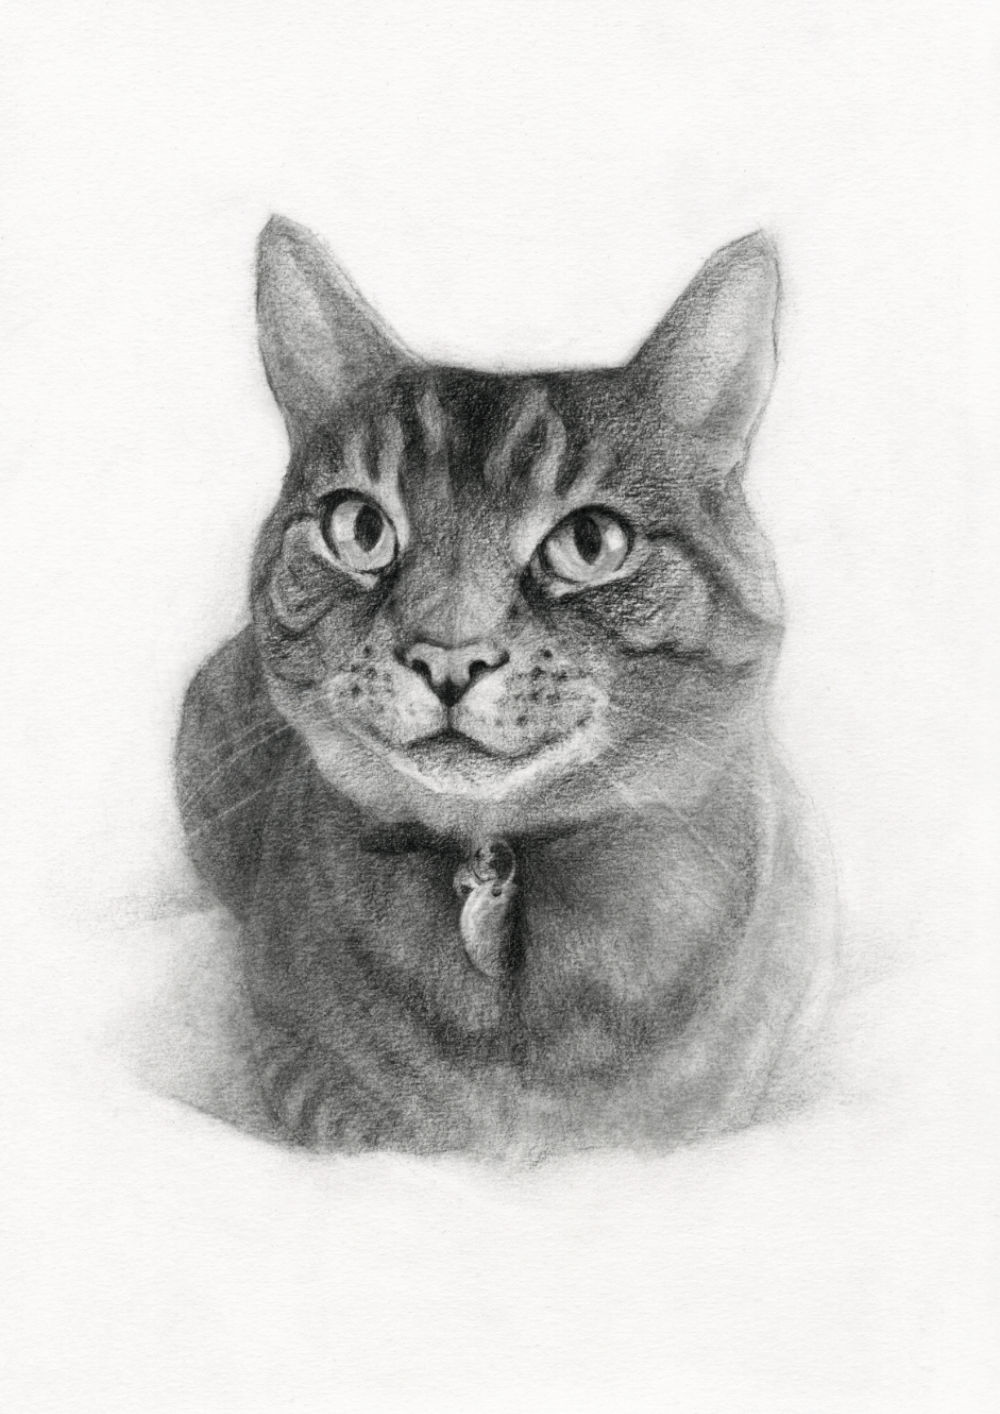 Cat Drawing in Charcoal on Paper, by Artist & Illustrator James Martin